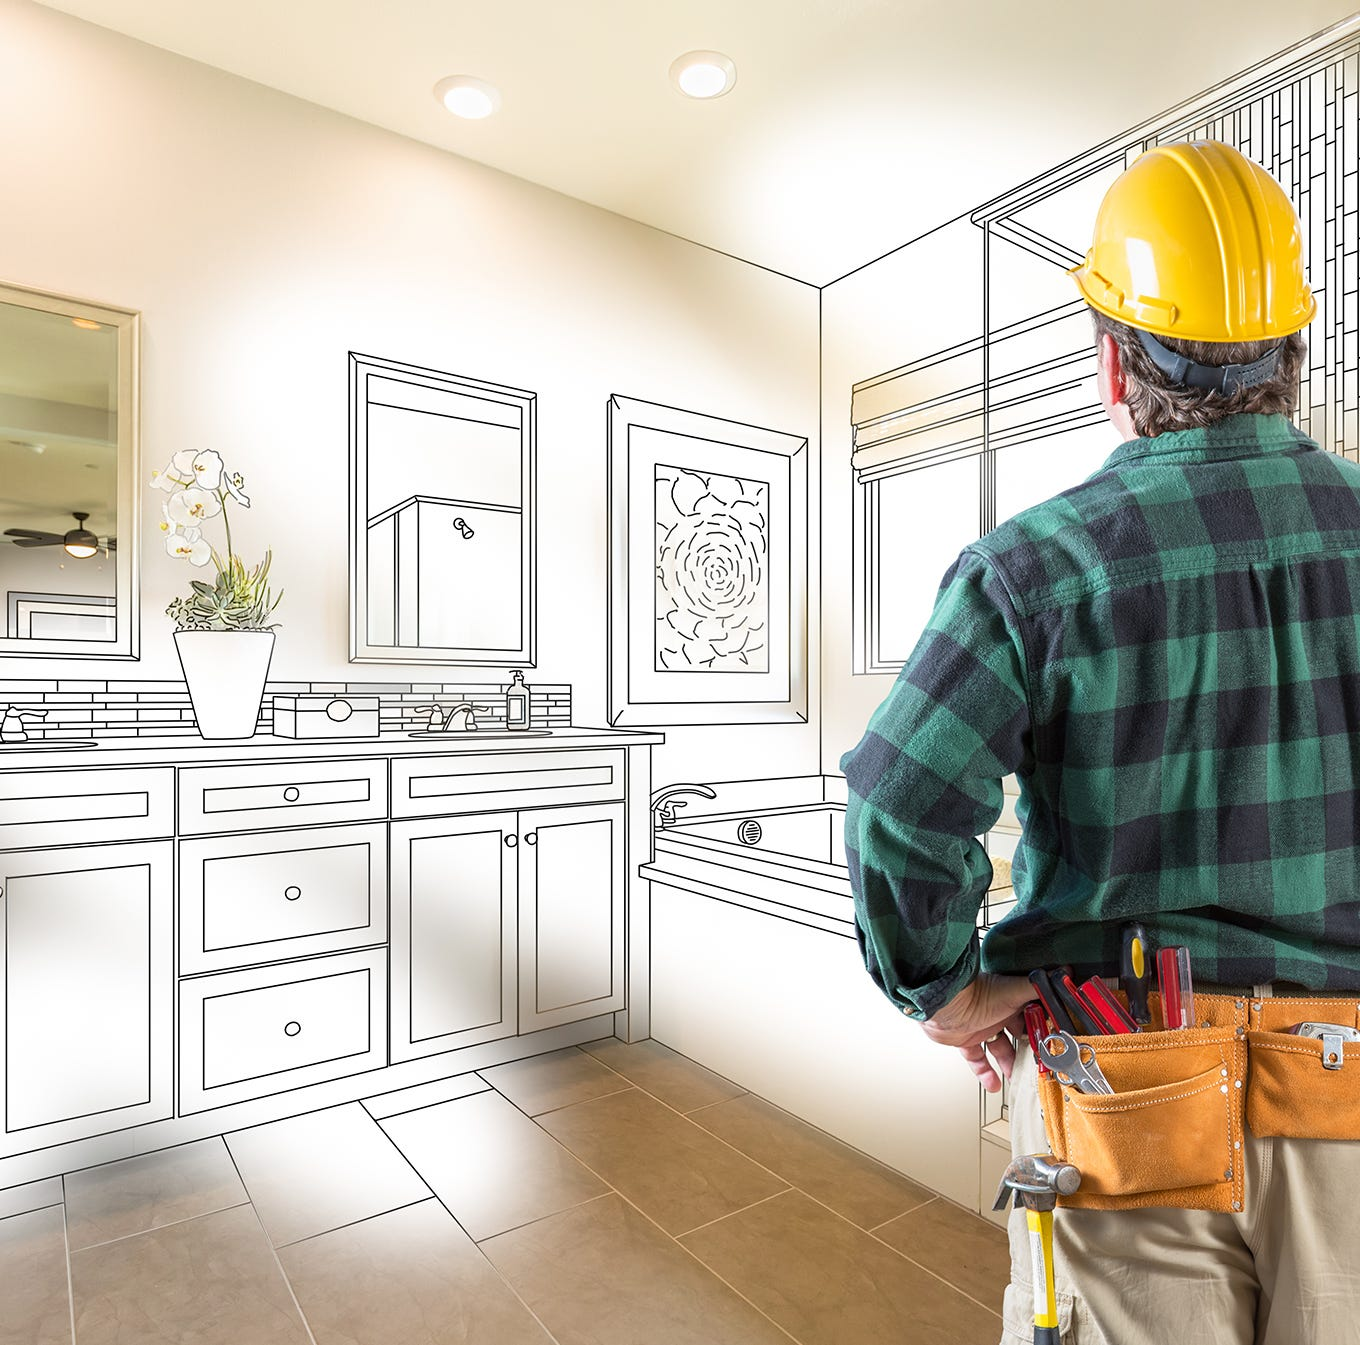 Taking on a Bathroom Remodel? Consider These Important Tips